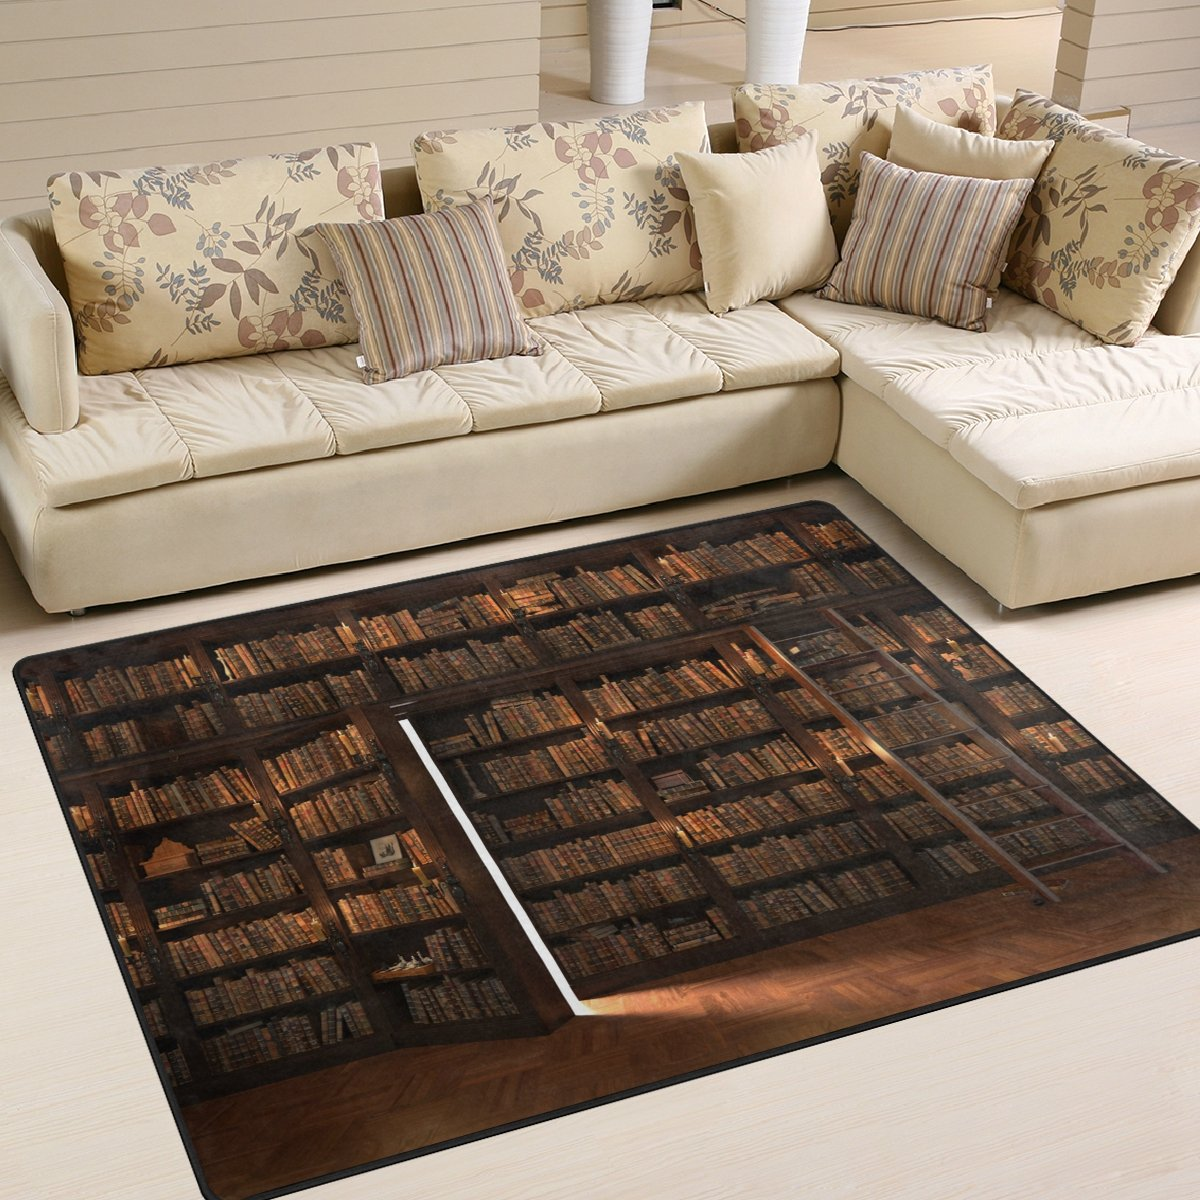 ALAZA Secret Door in the Bookcase Bookshelf Back to School Library Area Rug Rugs for Living Room Bedroom 7' x 5'